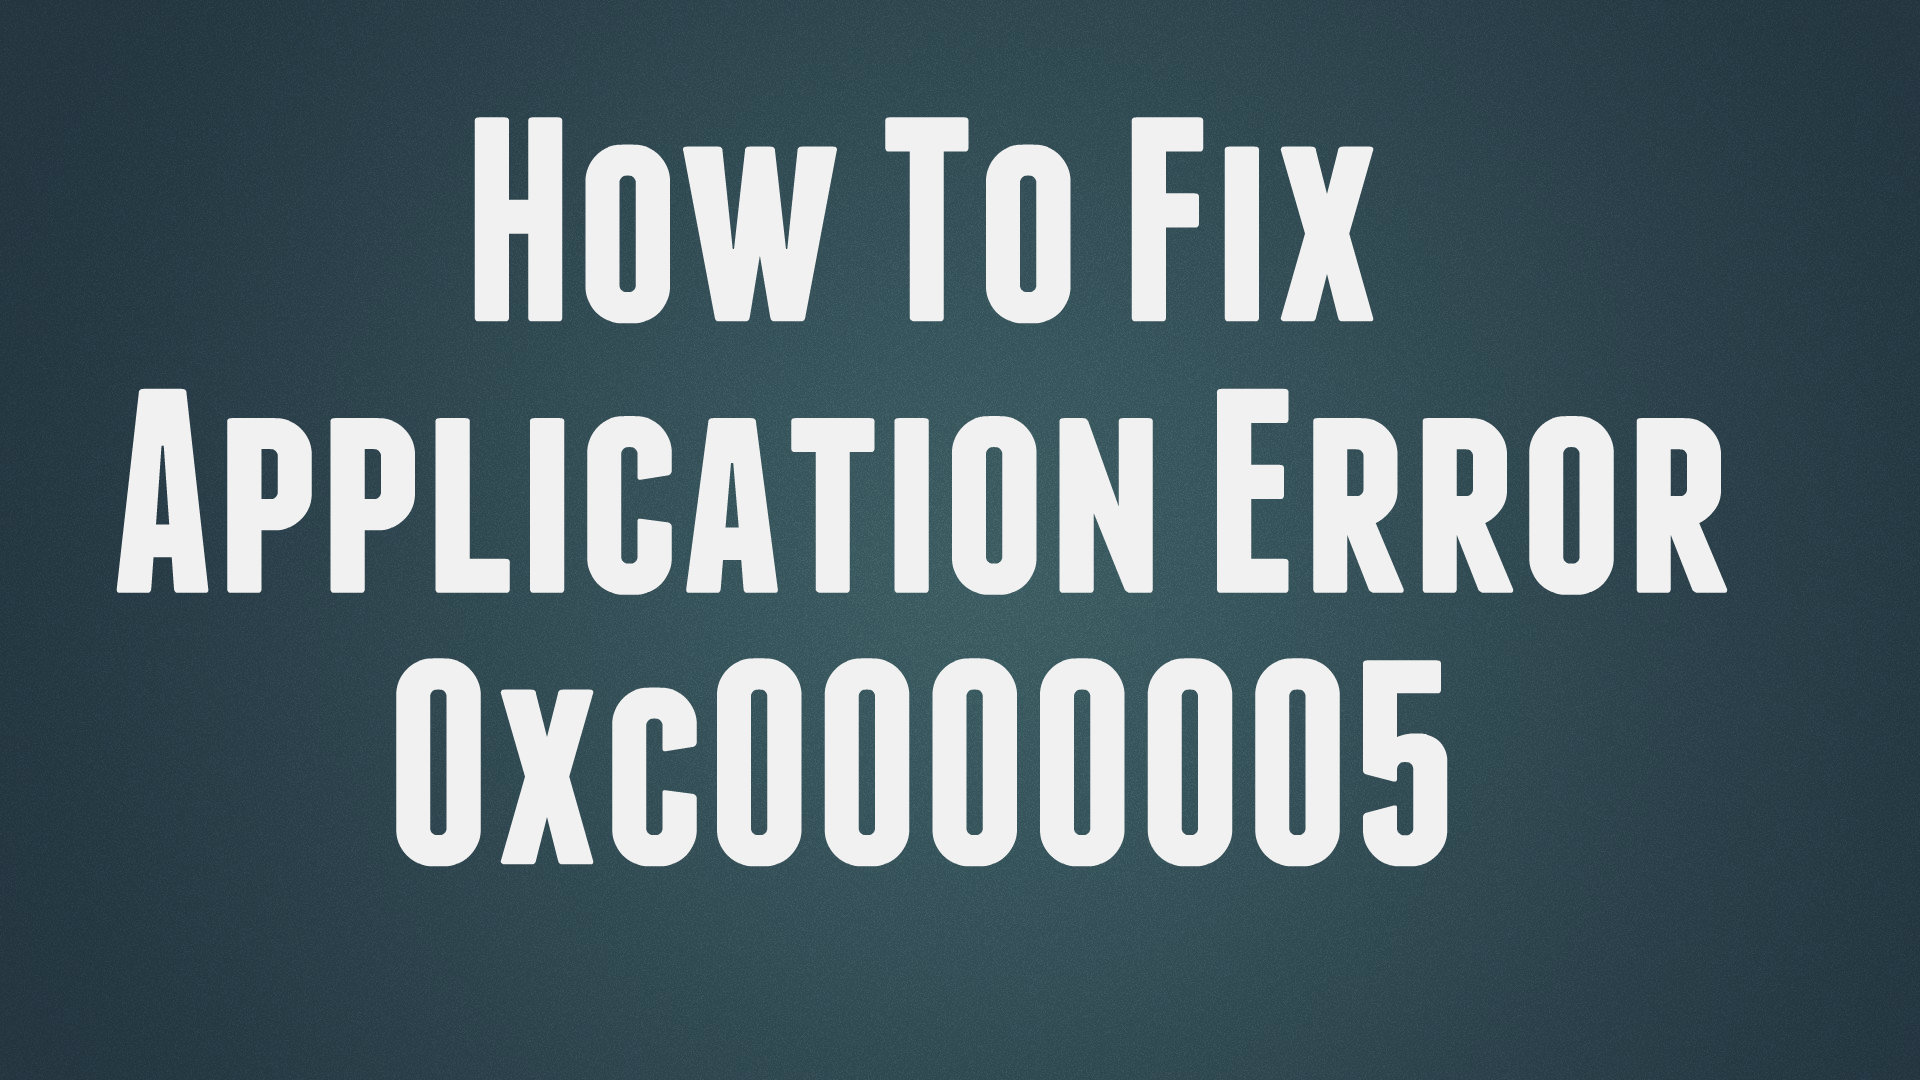 How To Fix Application Error 0xc0000005 Troubleshooter